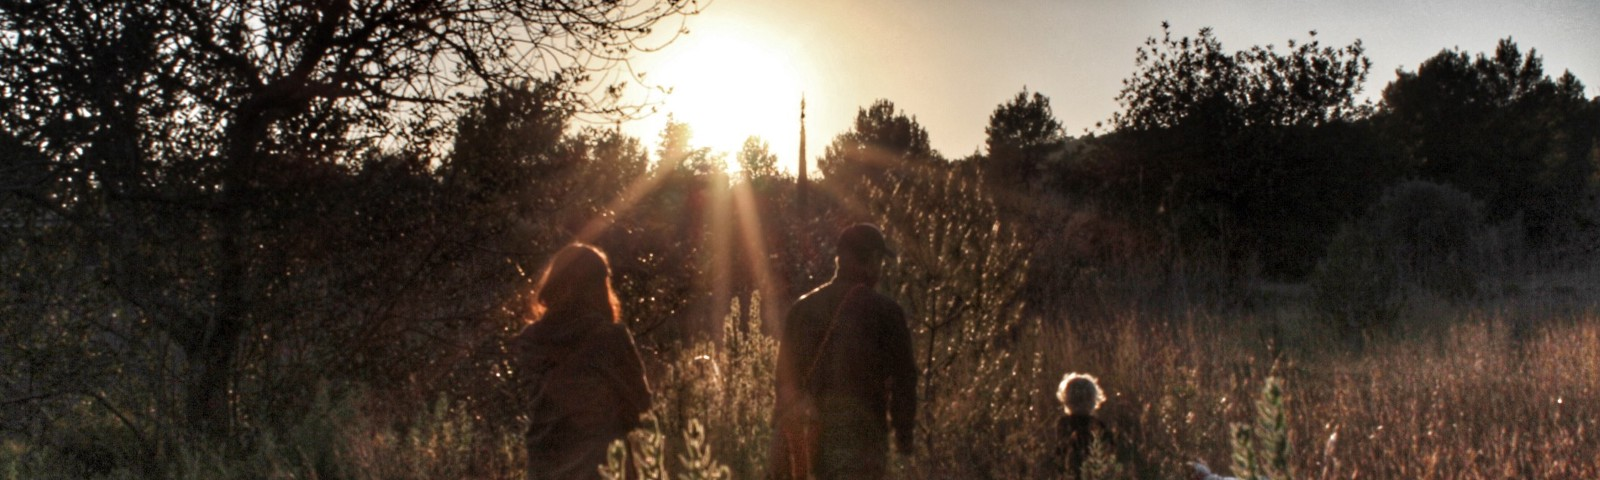 The silhoutte of a family walking through tall grass at sunset.